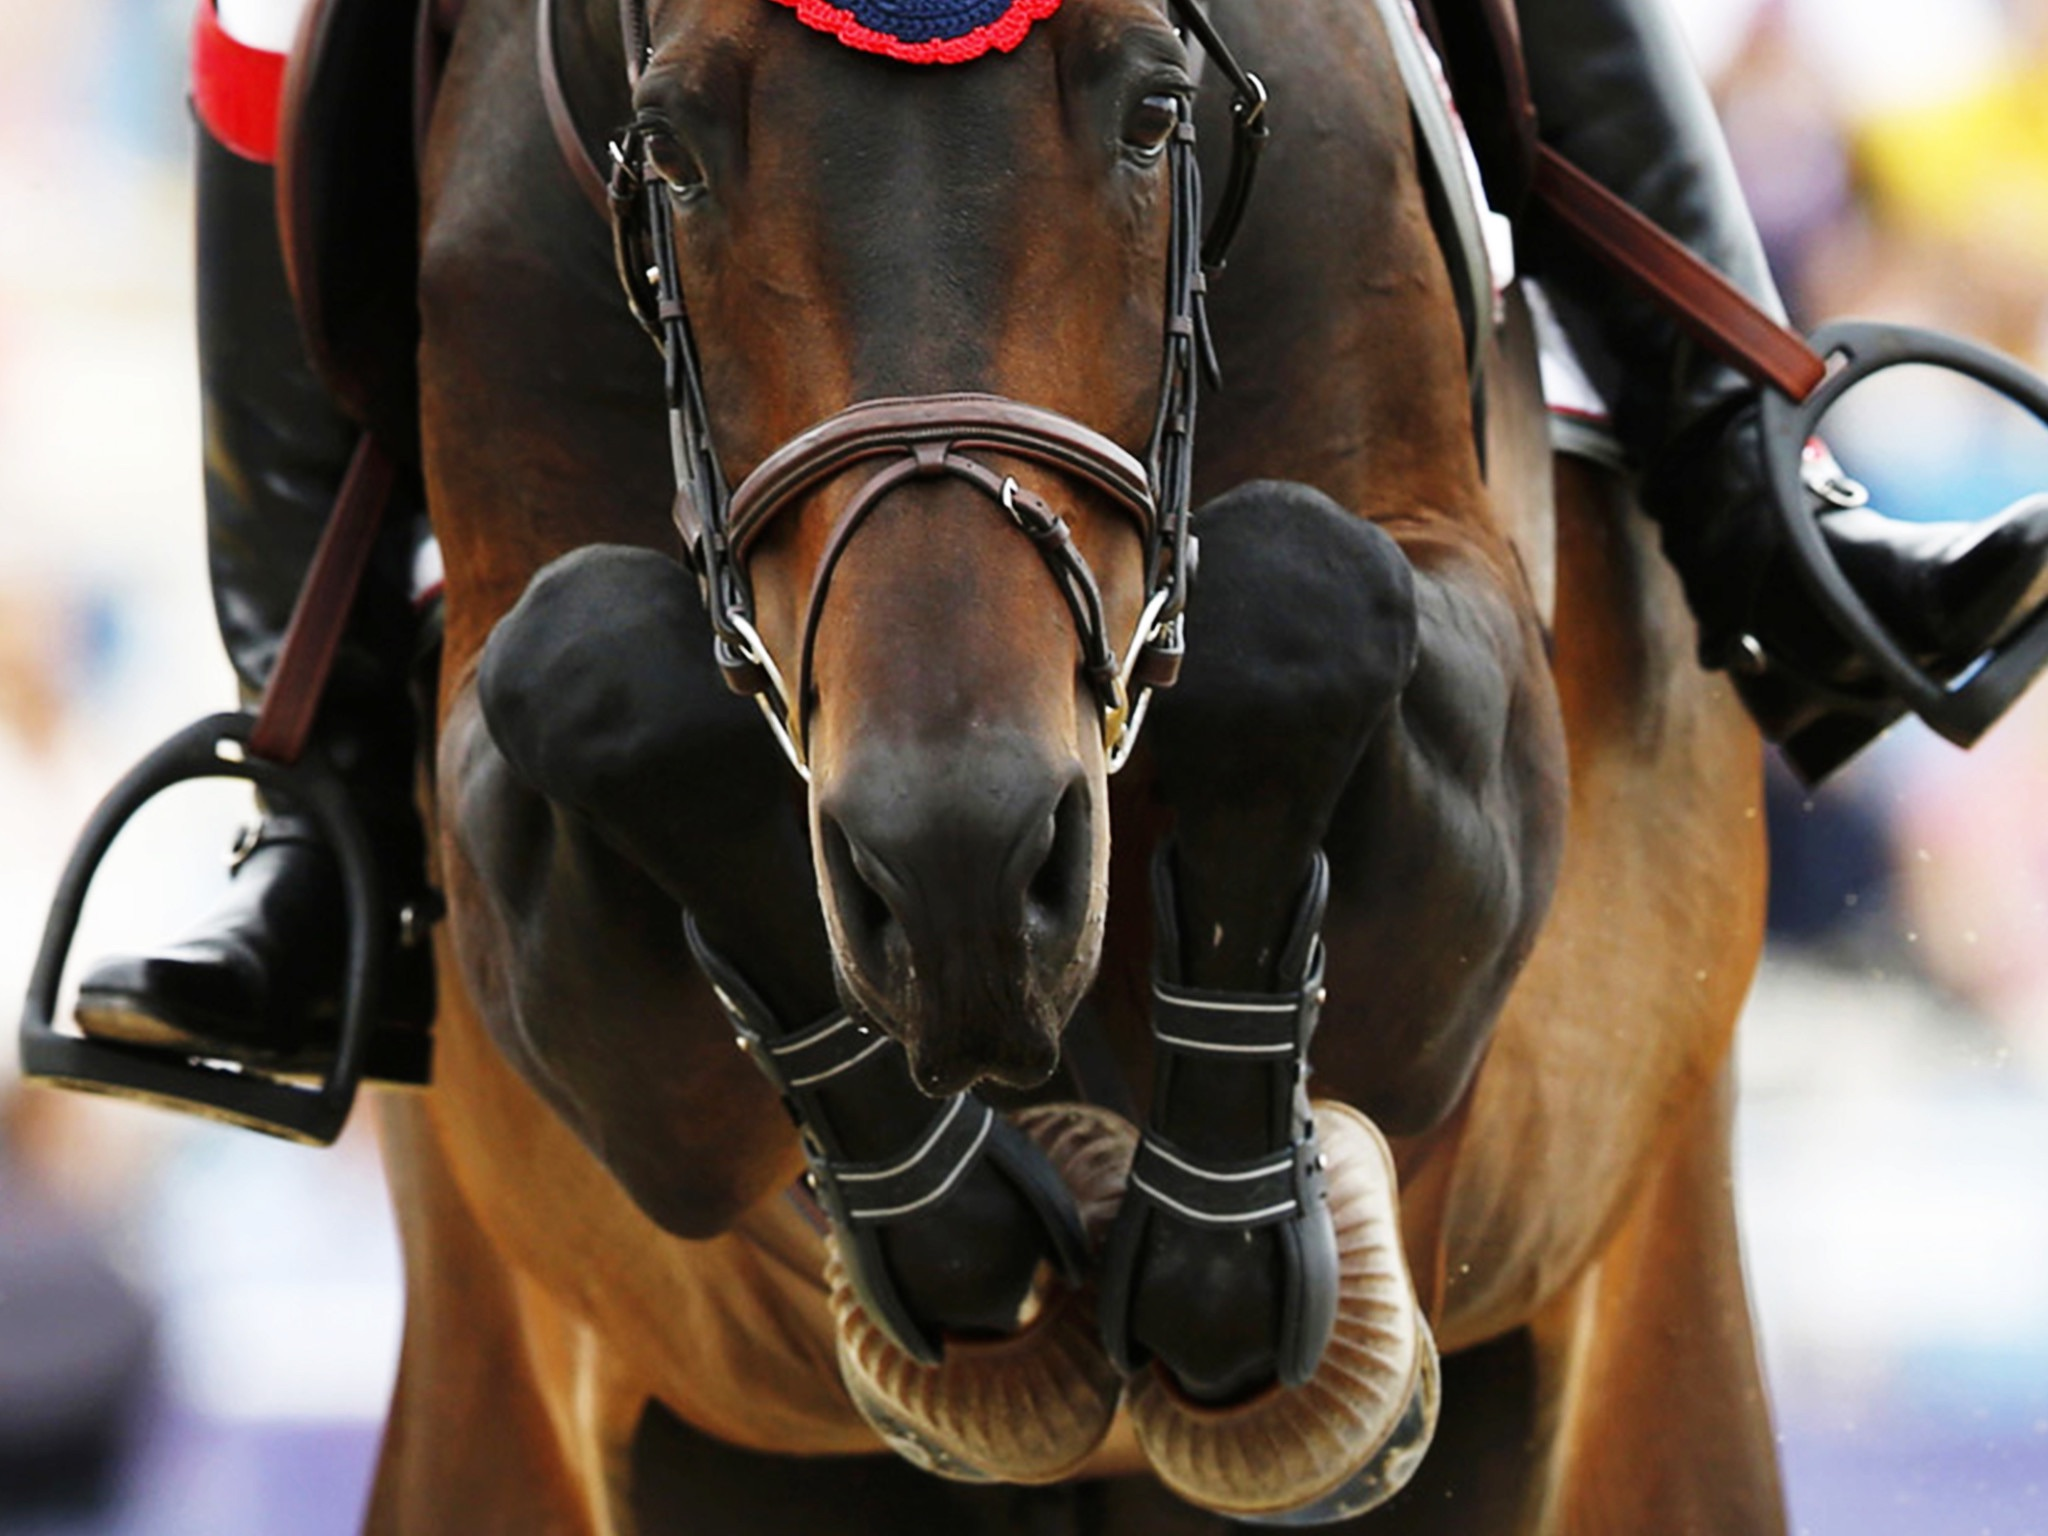 Equestrian Sport Wallpaper Free Horse Jumping Image